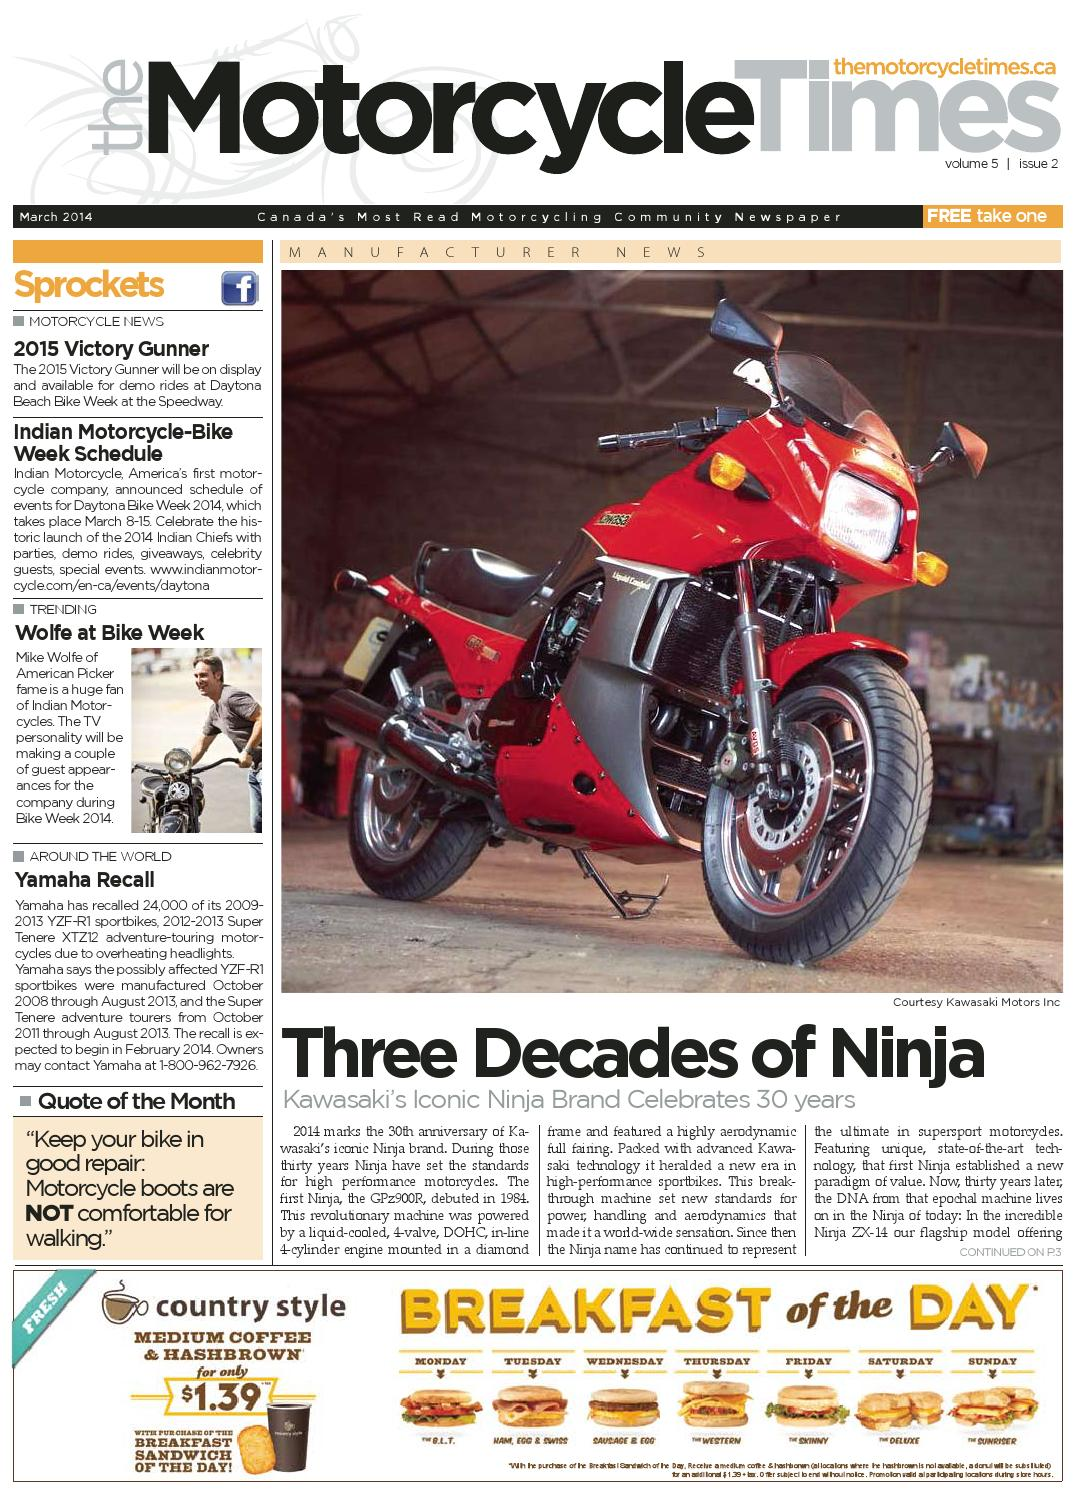 Surplus Of Synapses May Stunt Motor >> The Motorcycle Times March 2014 By The Motorcycle Times Issuu